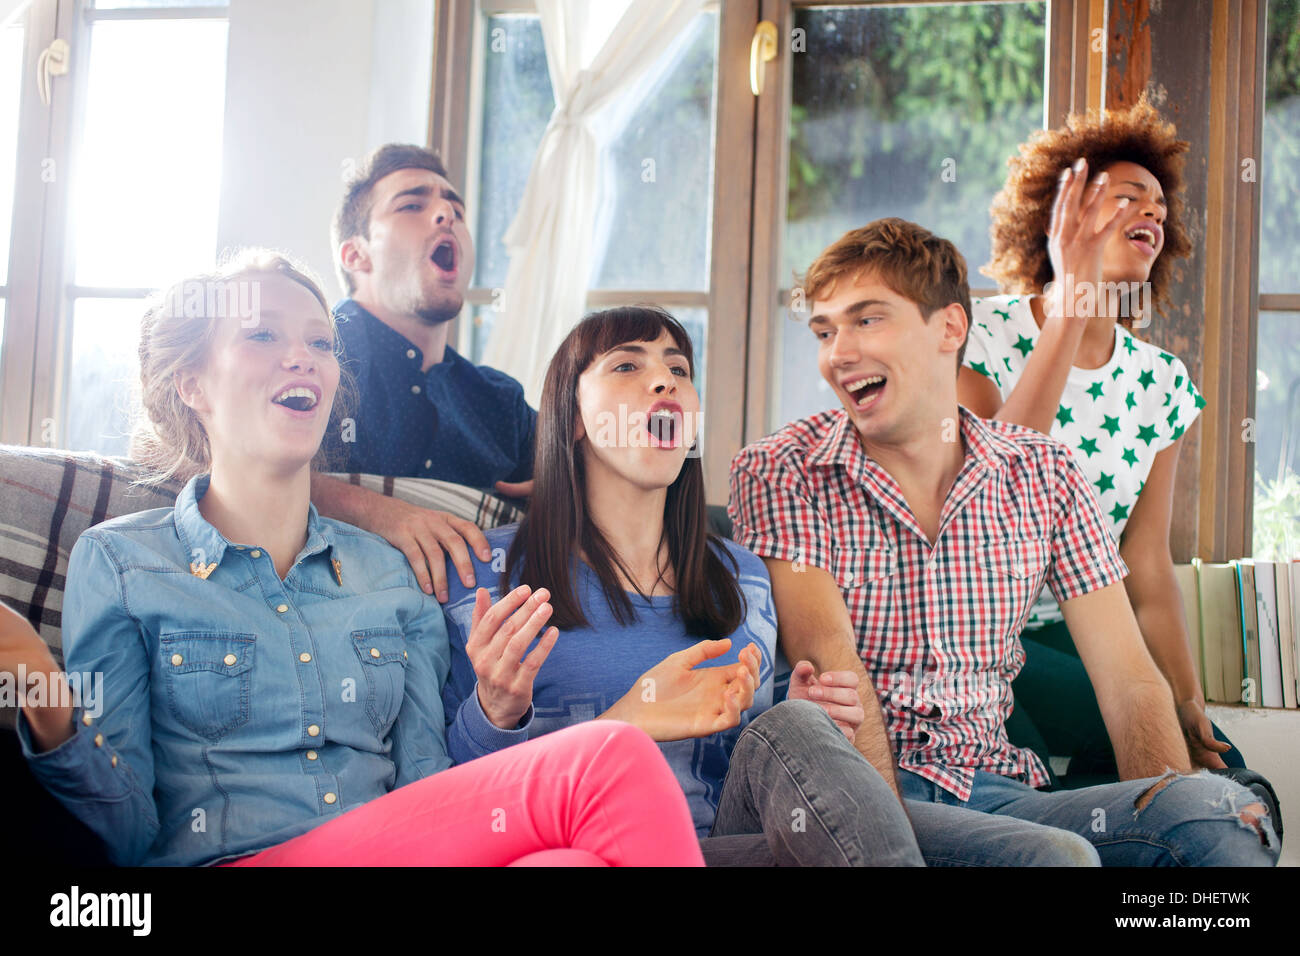 Five friends watching television - Stock Image